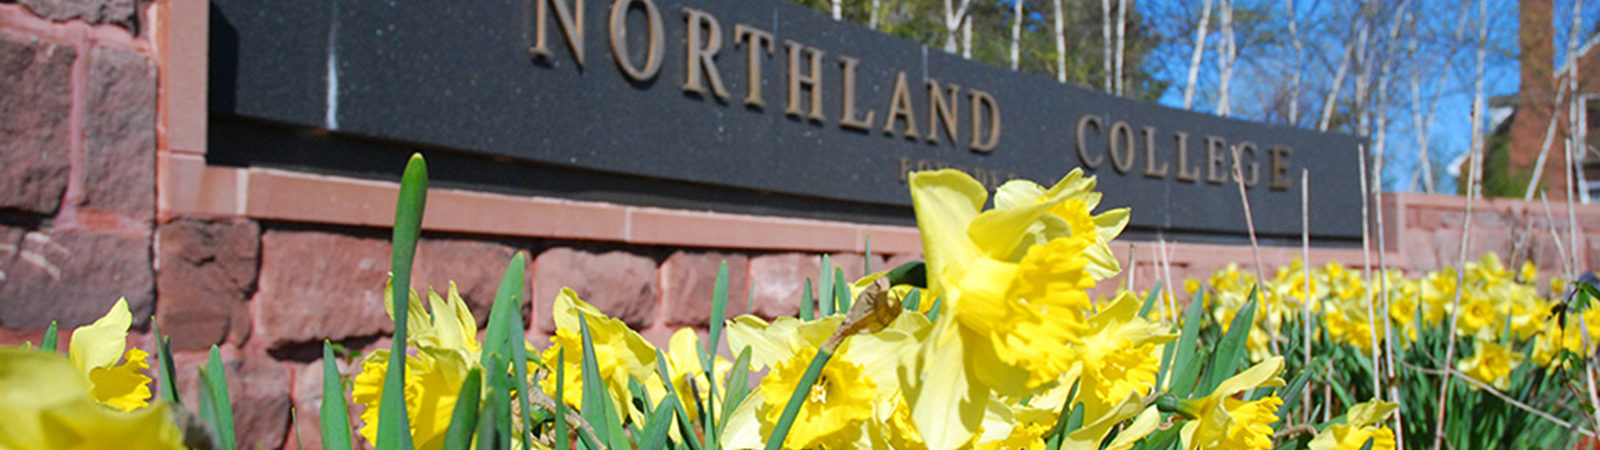 Northland sign in spring